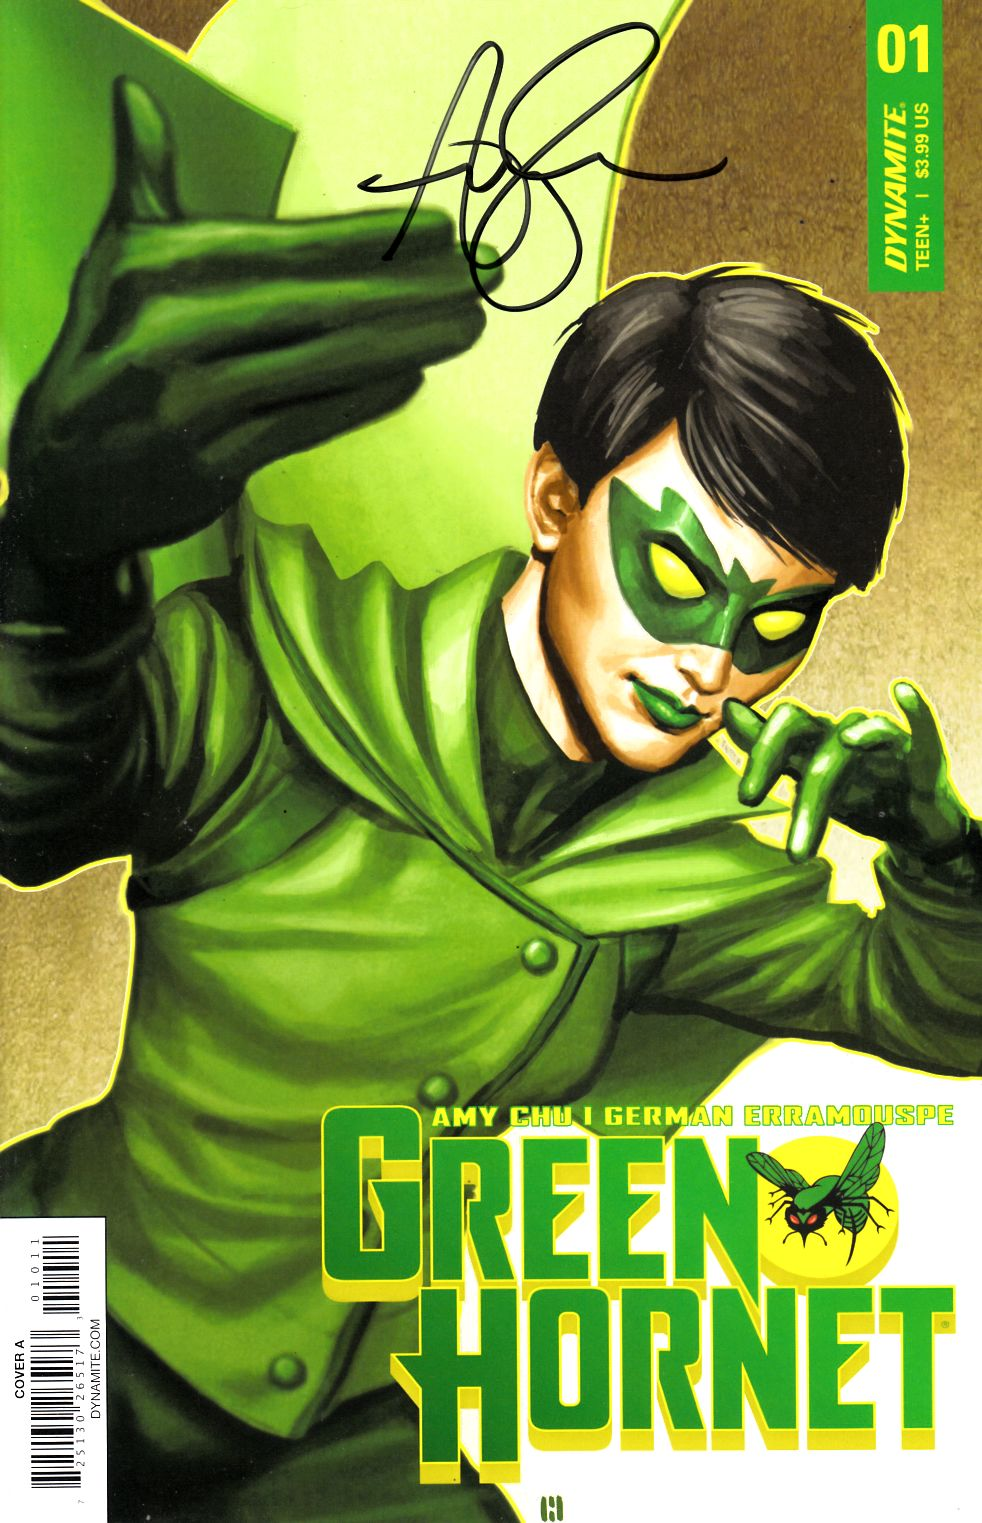 Green Hornet #1 Cover A Signed by Amy Chu Near Mint (9.4) [Dynamite Comic] THUMBNAIL